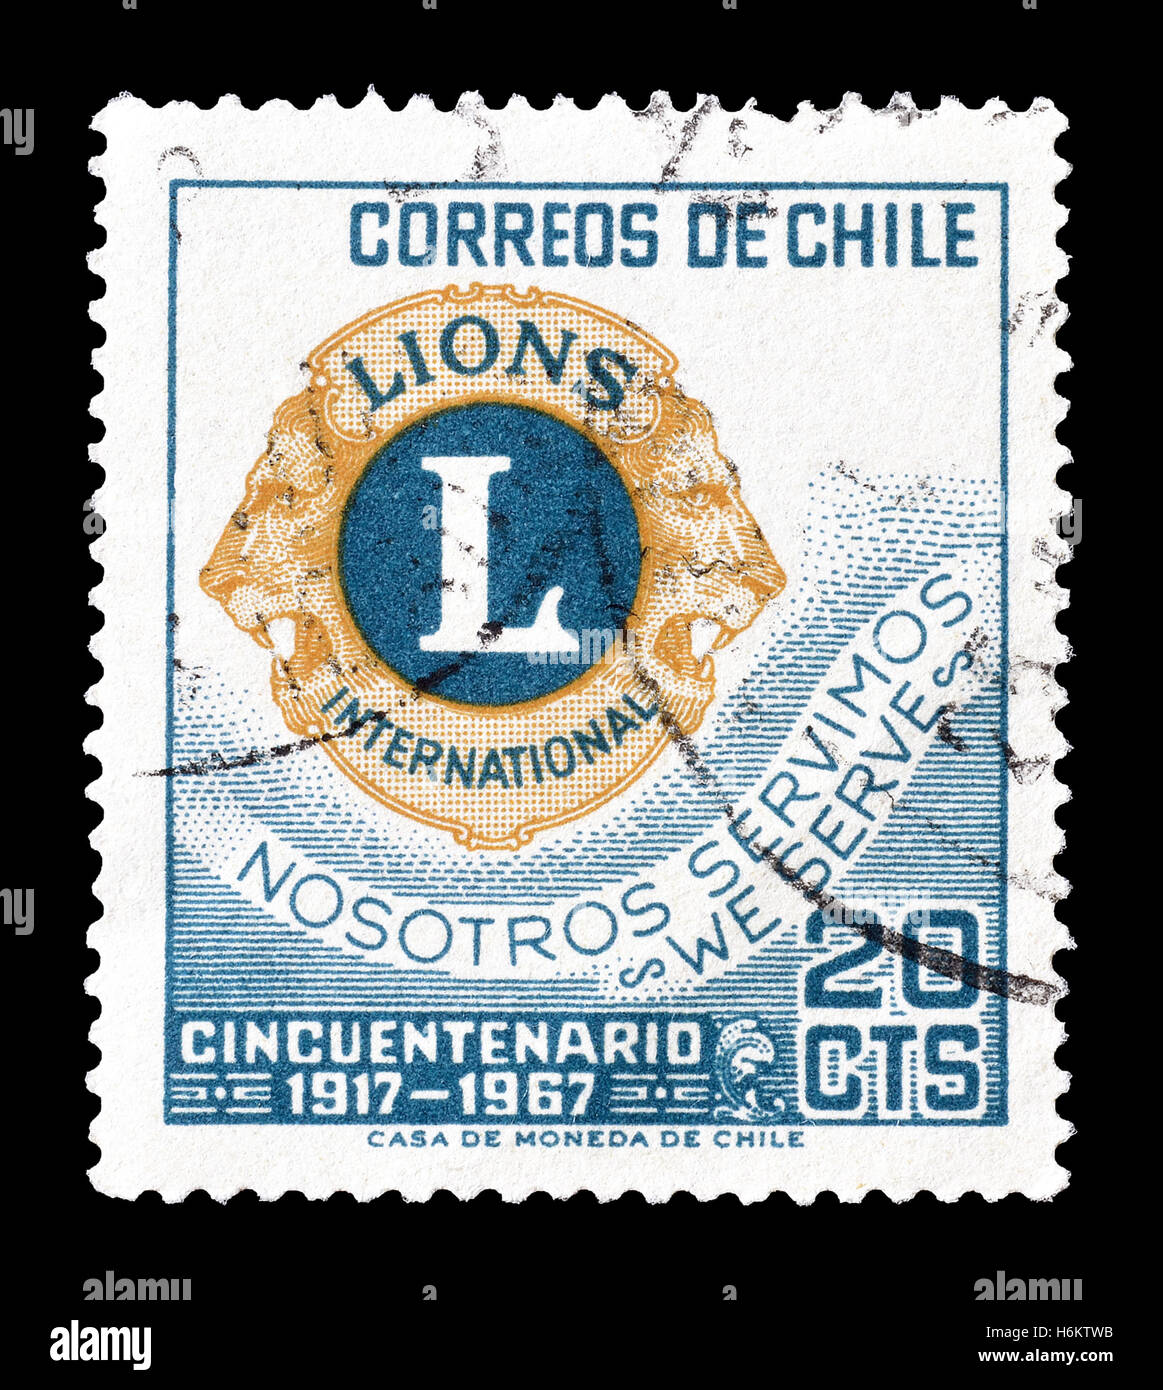 Chile Stamp 1967 Stock Photo 124597127